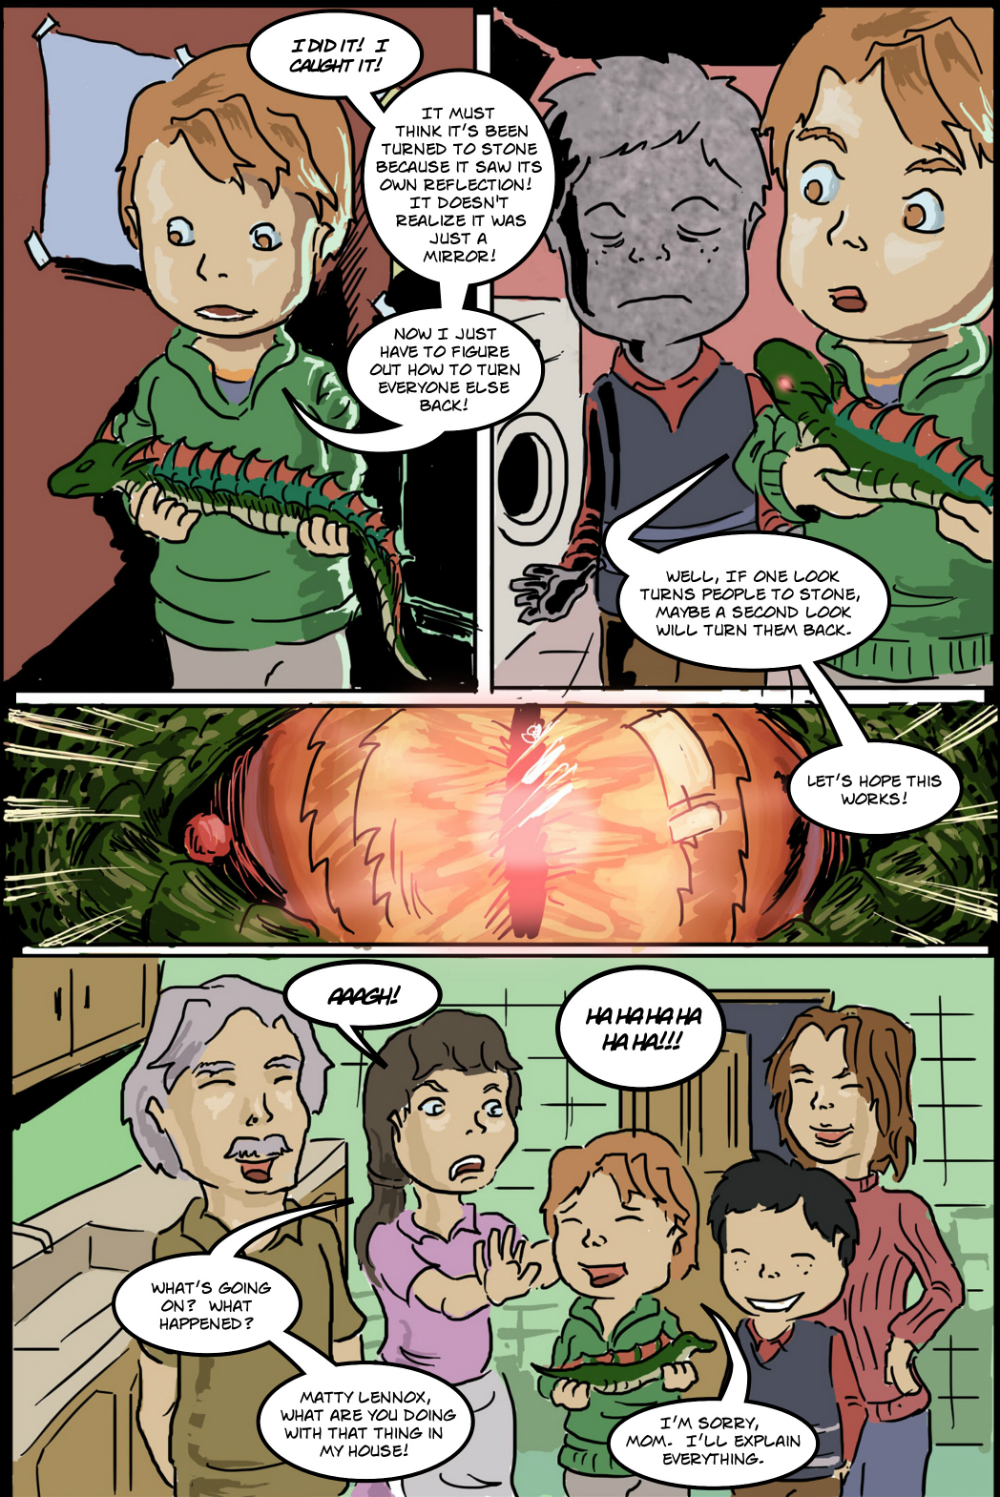 BASILISK IN THE HOUSE page 11 - story 18 in The Book of Lies